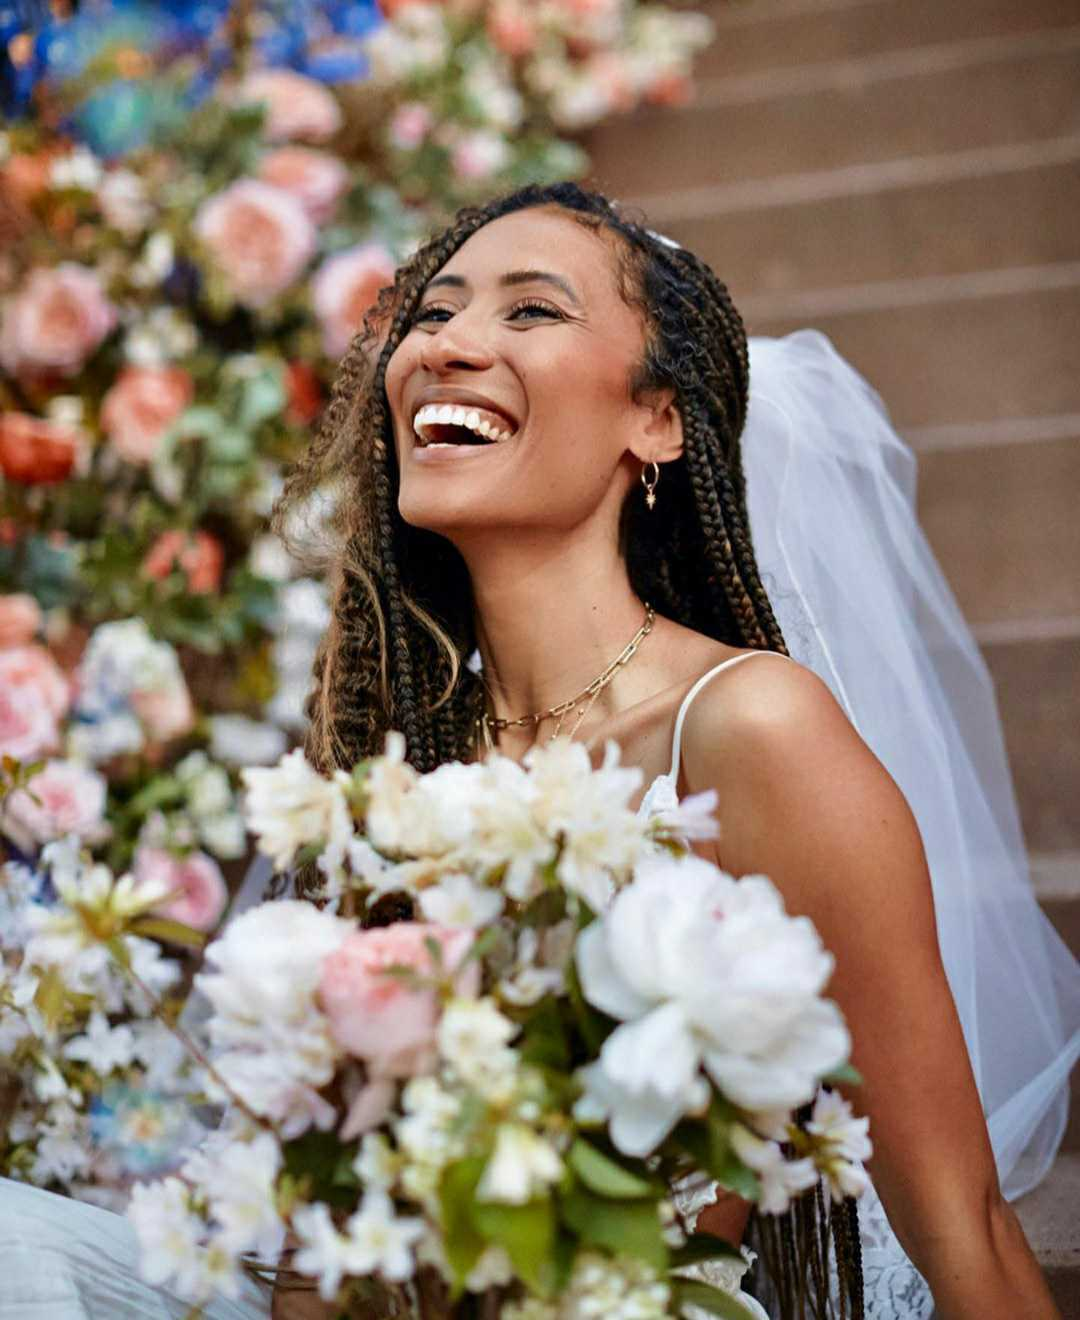 elaine welteroth wedding photo from her socially distanced event on her floral Brooklyn stoop